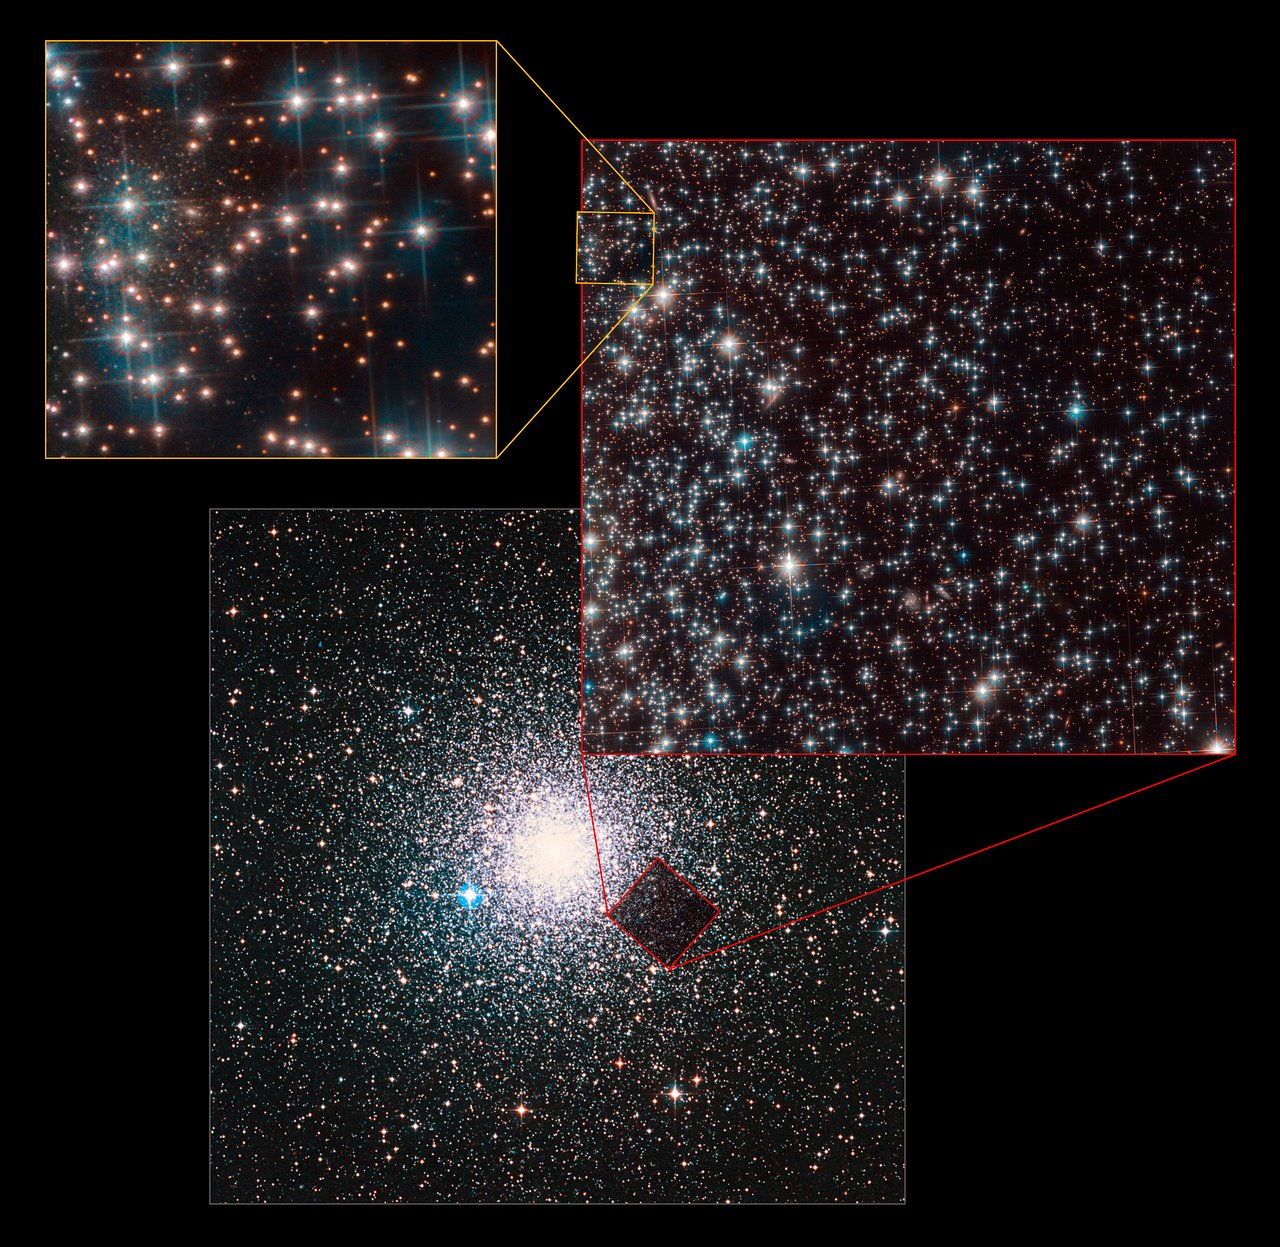 Zooming in on NGC 6752 and Bedin 1